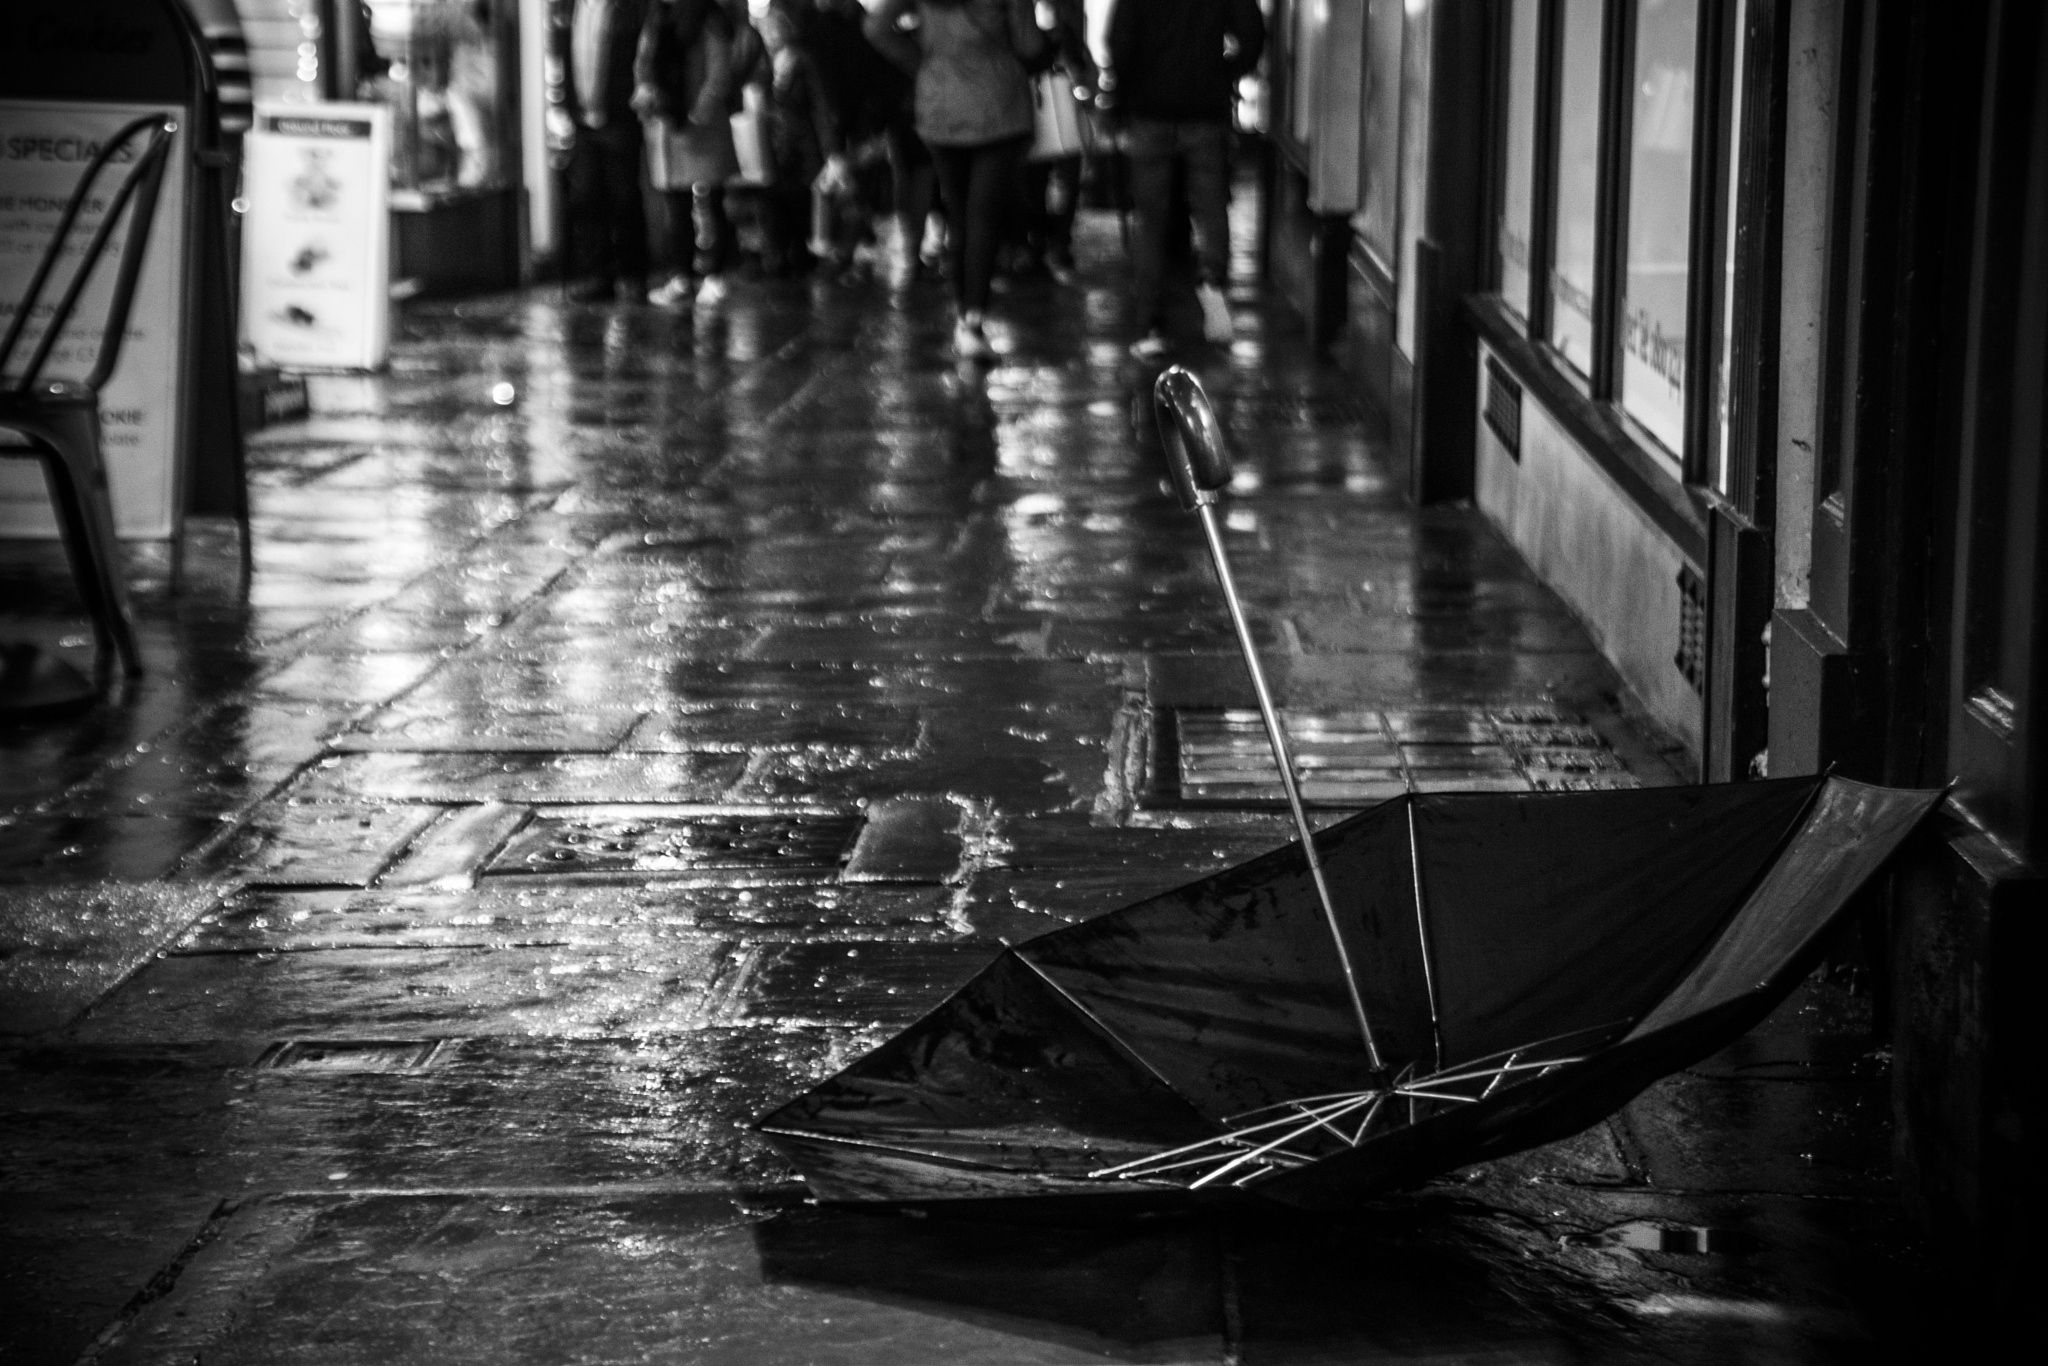 The Forgotten Umbrella - The rain passes and an umbrella lies in the middle of a…